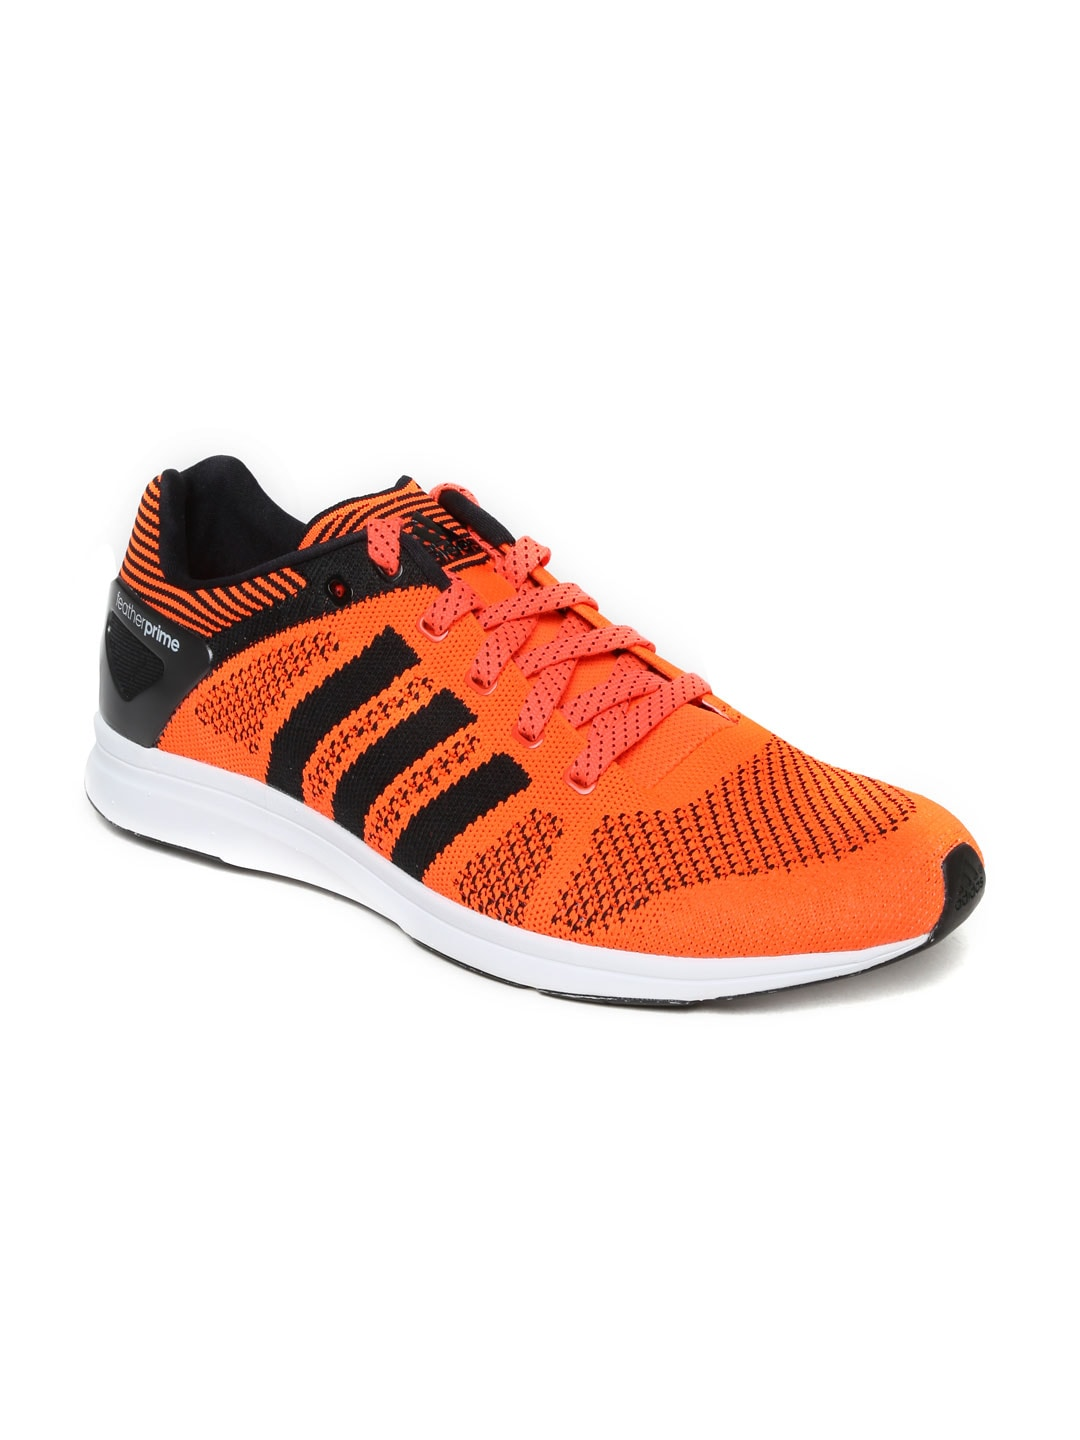 sneakers for cheap 6c850 a385d Adidas m21200 Men Orange Adizero Feather Prime M Running Shoes- Price in  India